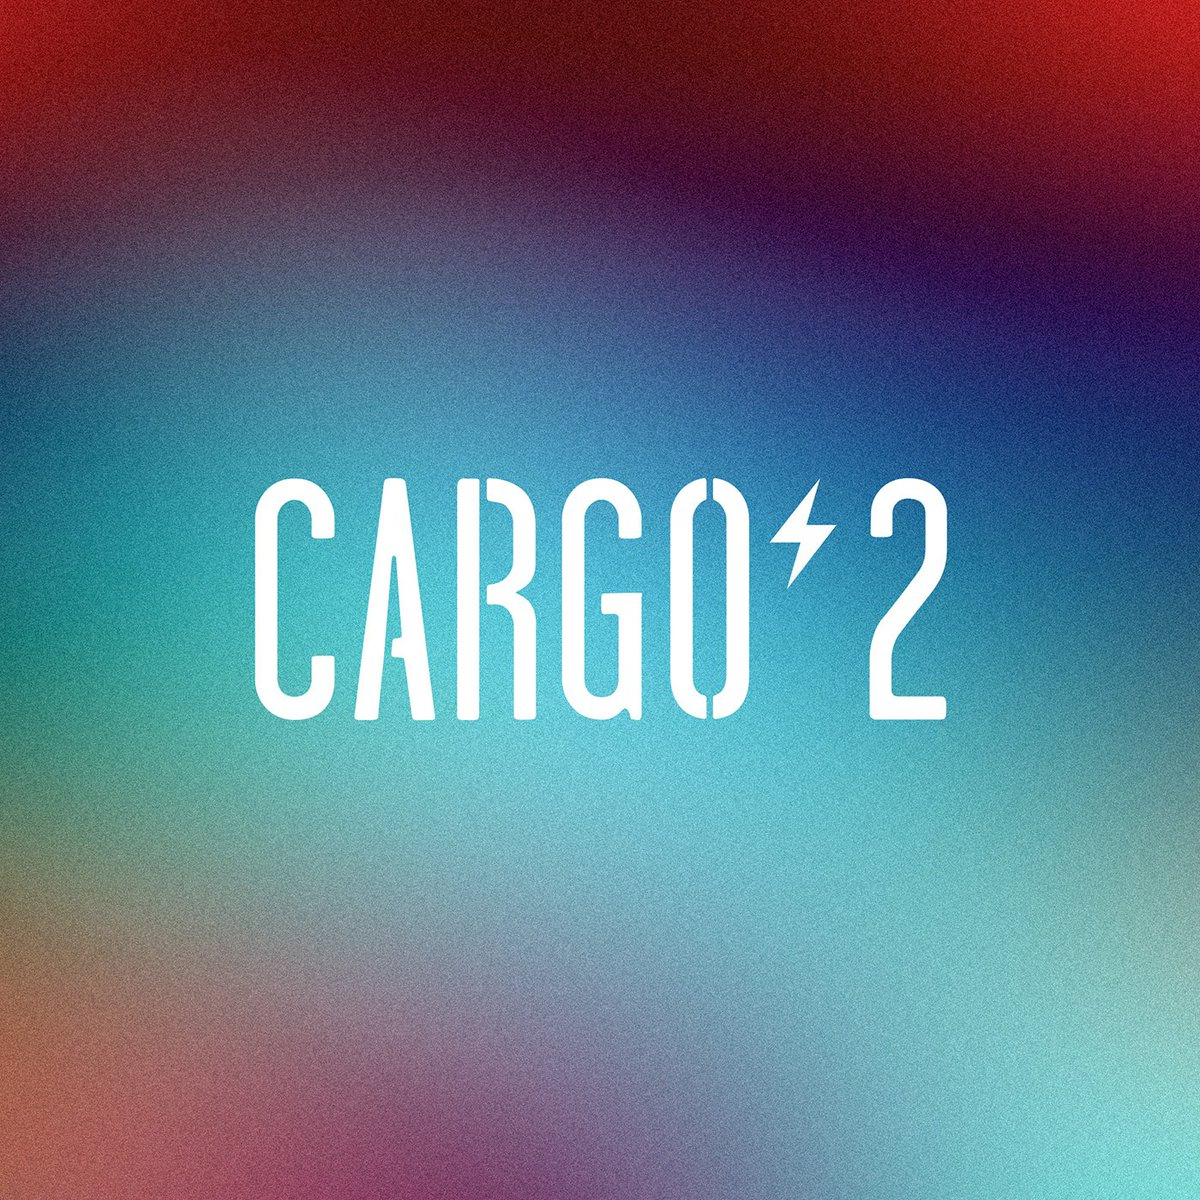 Cargo 2 is live. See what's new: https://t.co/MqLivbzPg3 https://t.co/XneOyQUVWl